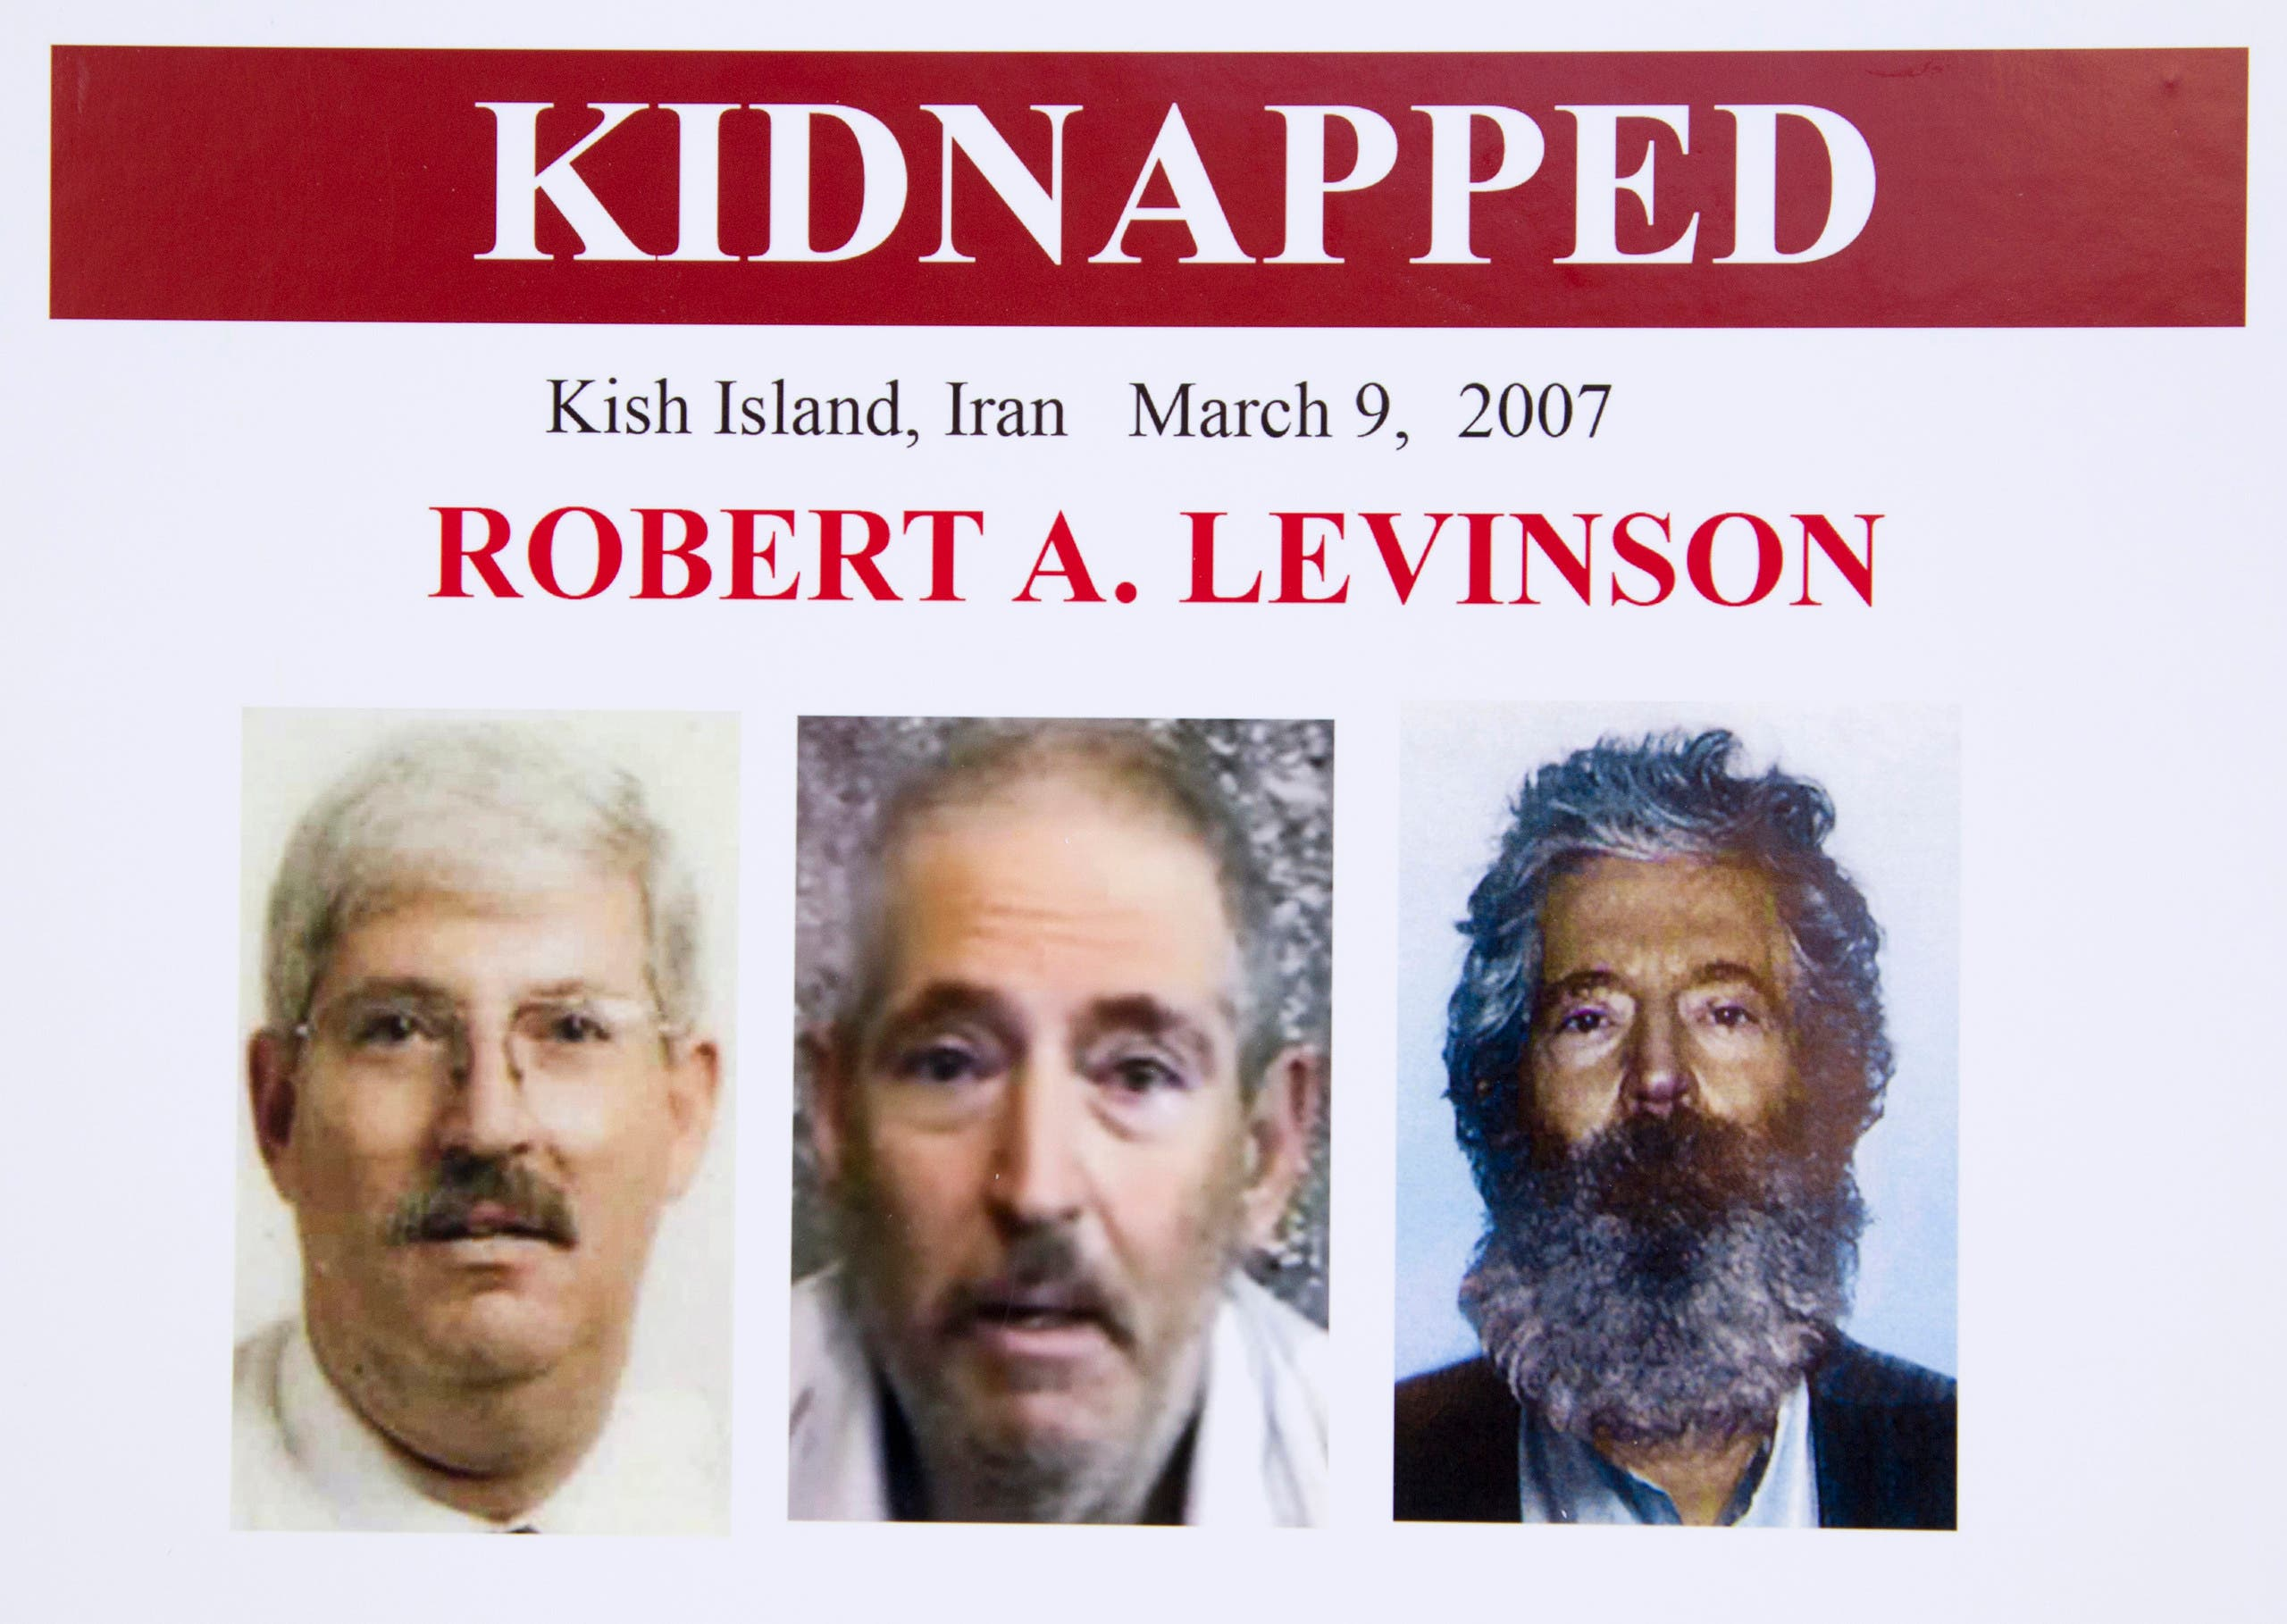 An FBI poster showing a composite image of retired FBI agent Robert Levinson, right, of how he would look like now after five years in captivity, and an image, center, taken from the video, released by his kidnappers, and a picture before he was kidnapped, left, displayed during a news conference in Washington, on March 6, 2012. (File photo: AP)